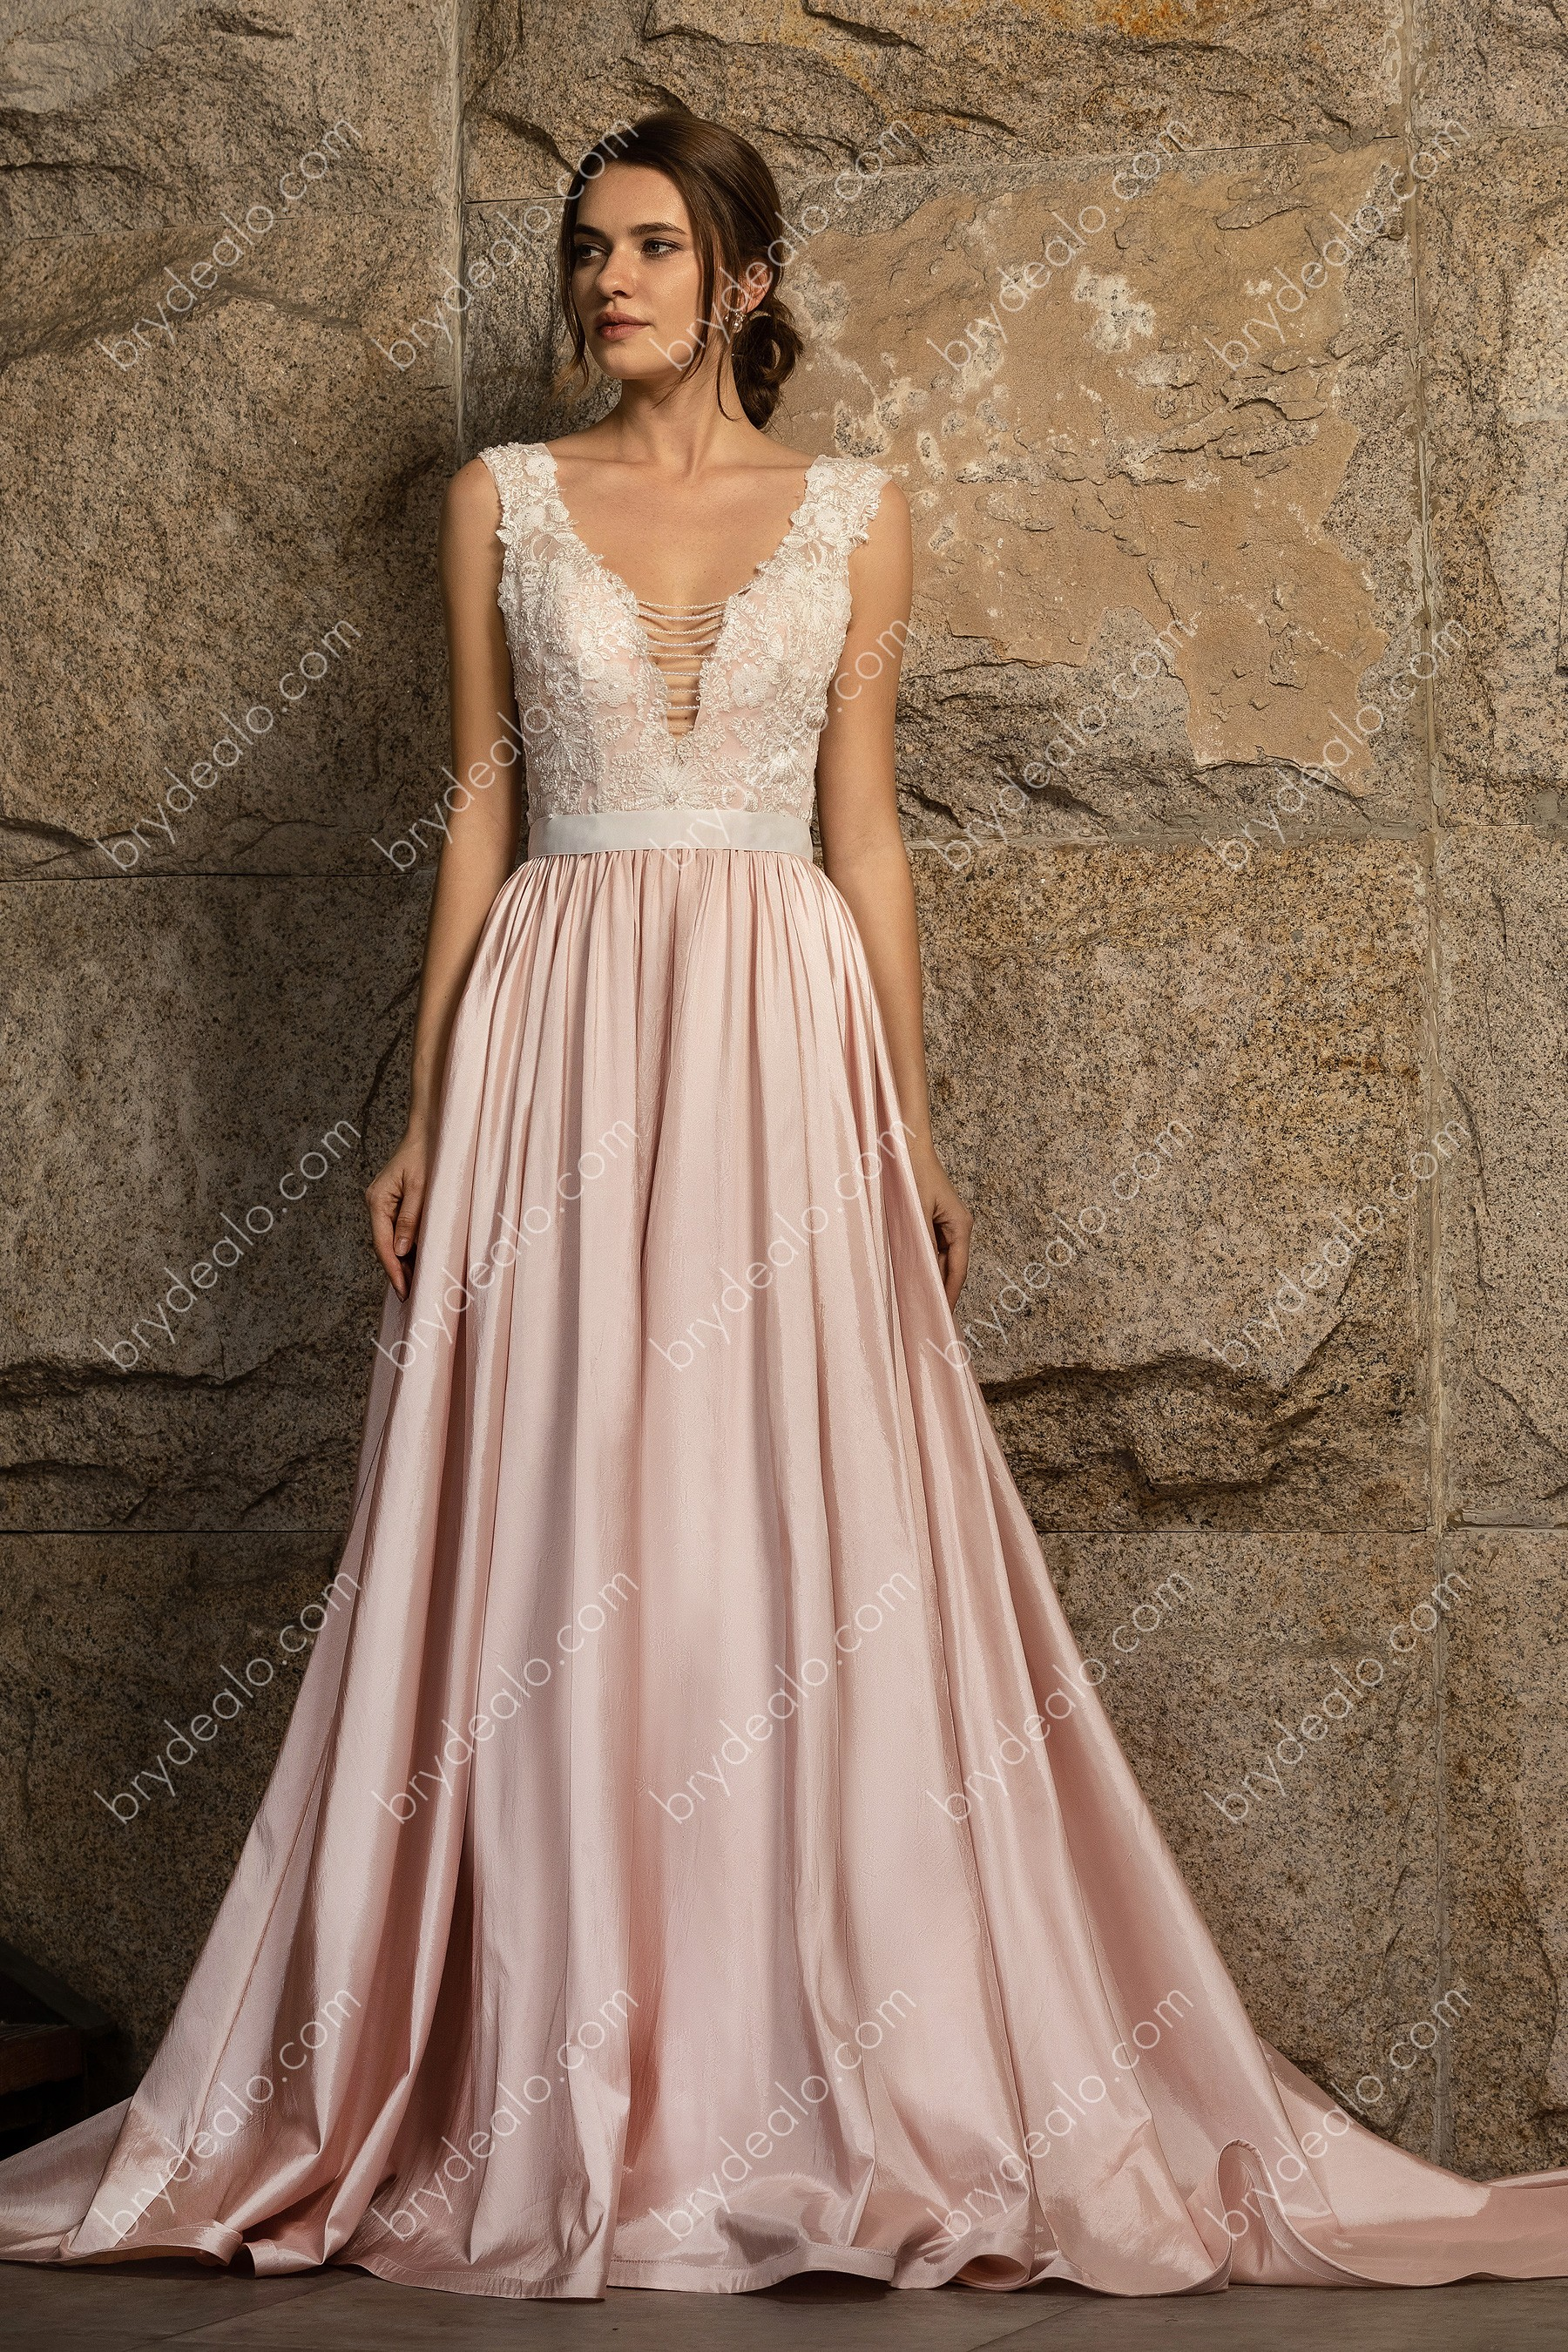 Lovely Pink Plunging V Neck Lace Taffeta Long A Line Wedding Dress